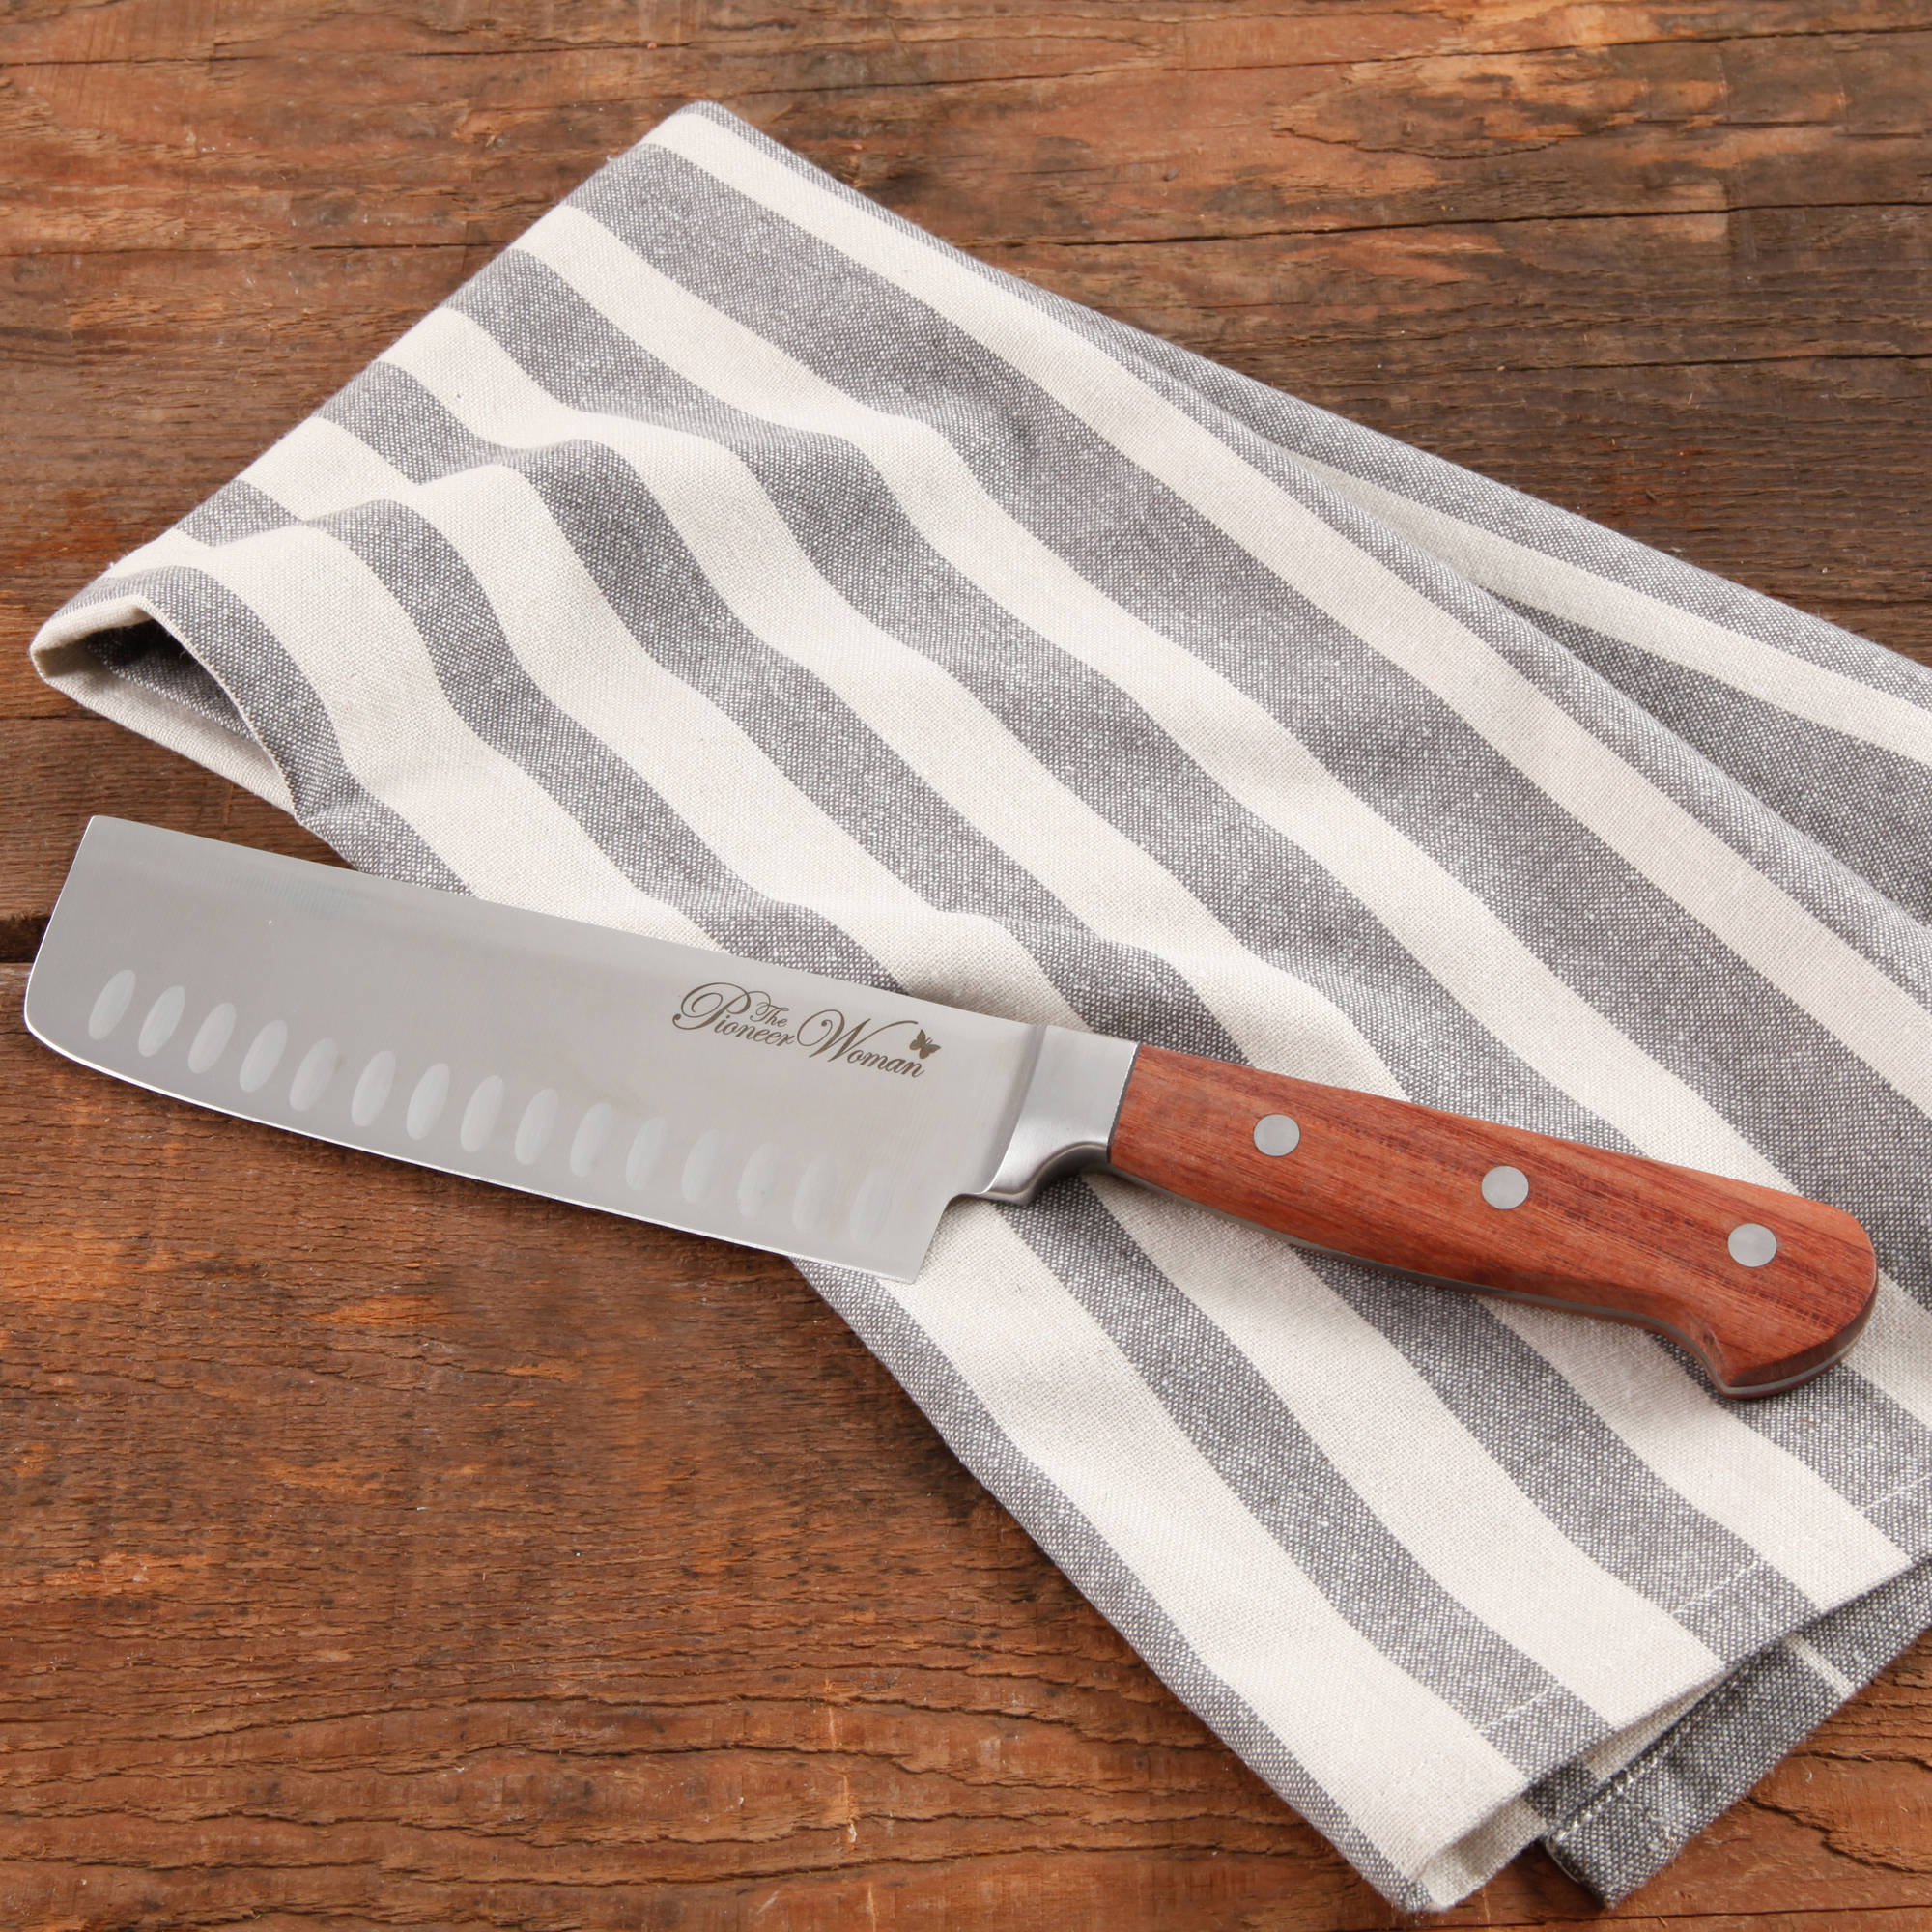 The Pioneer Woman Rosewood Handle Signature Knife